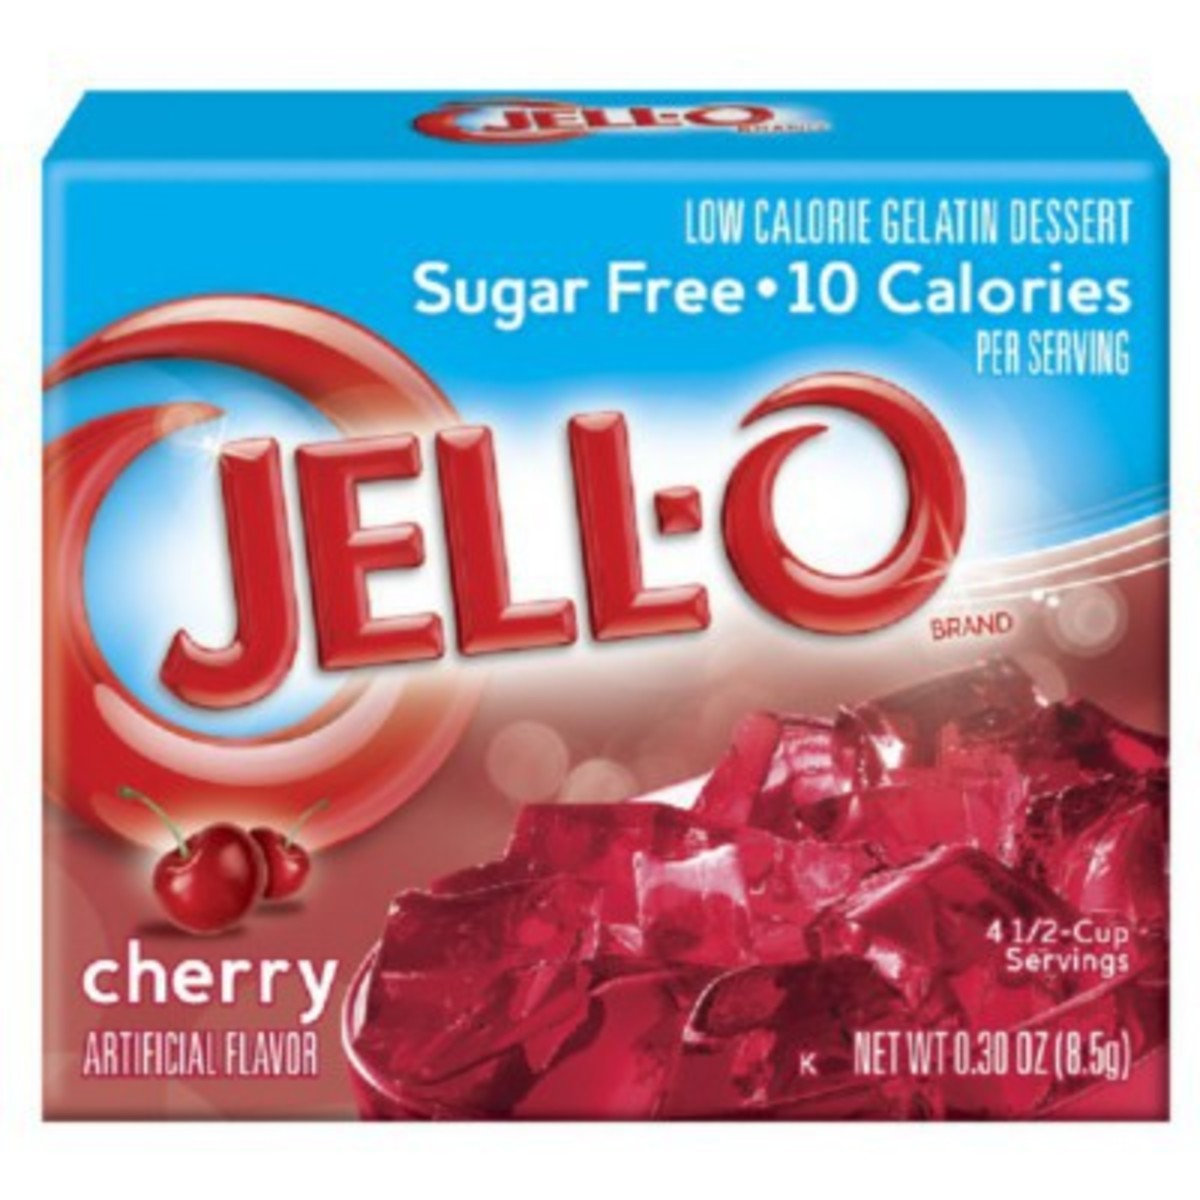 In 1984, sugar-free Jell-O appeared on grocery store shelves for the first time.